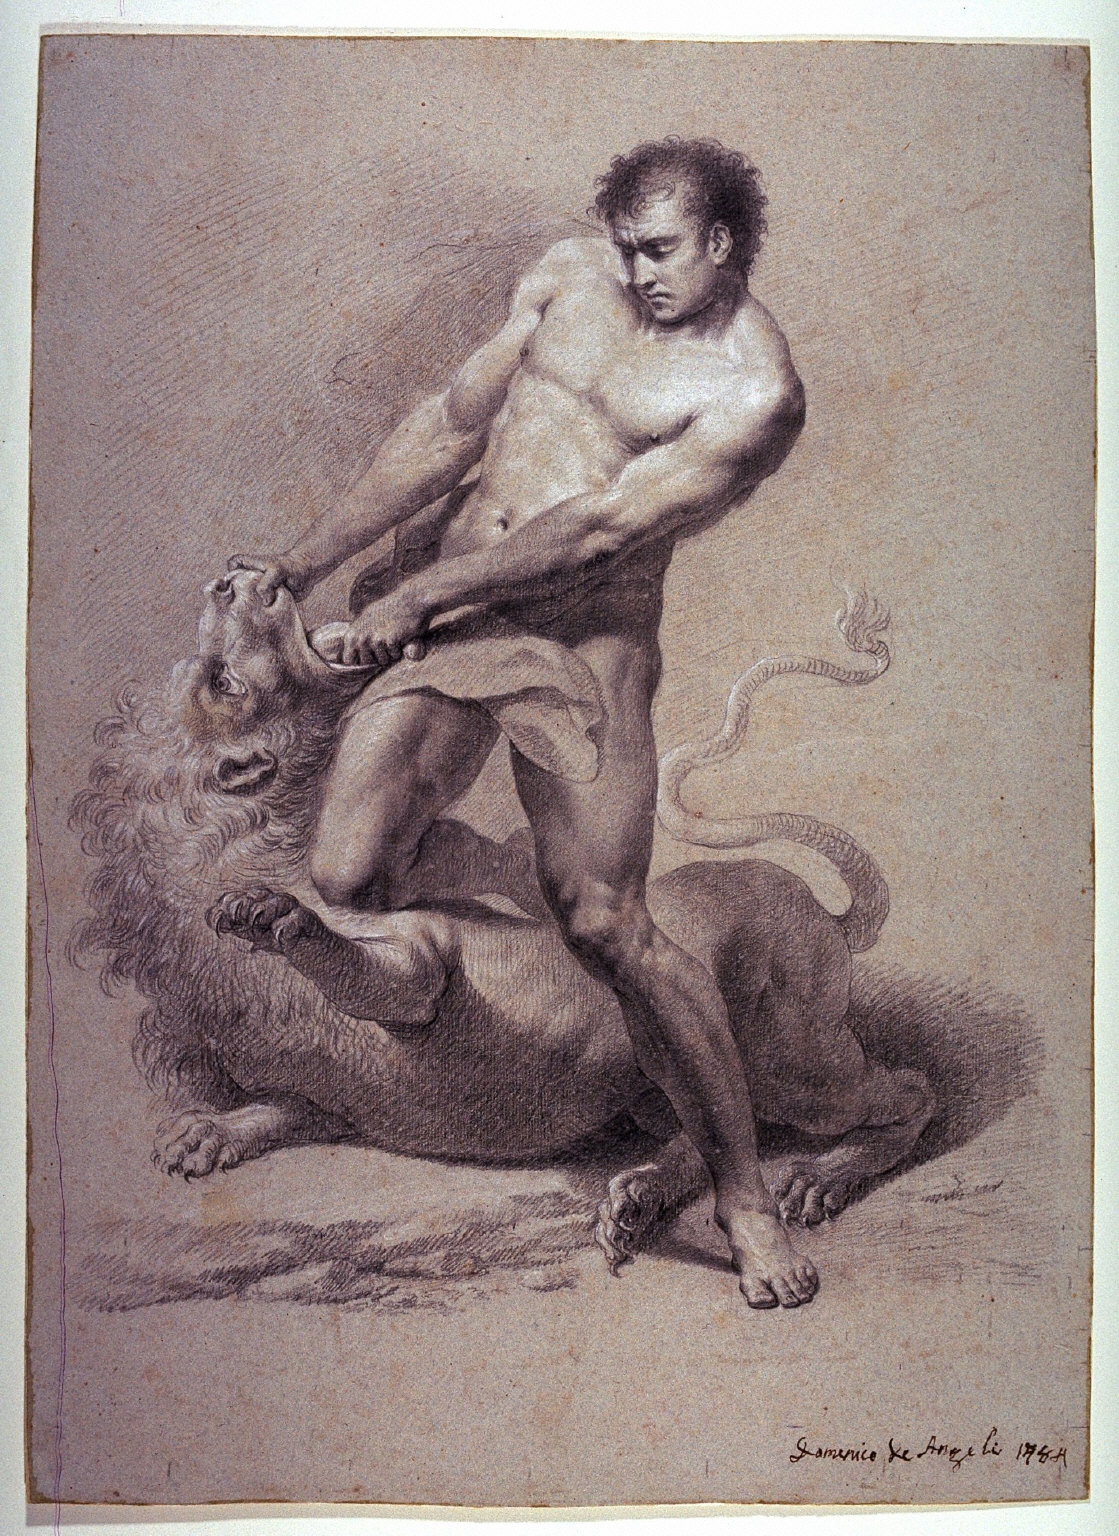 Hercules Struggling with the Lion